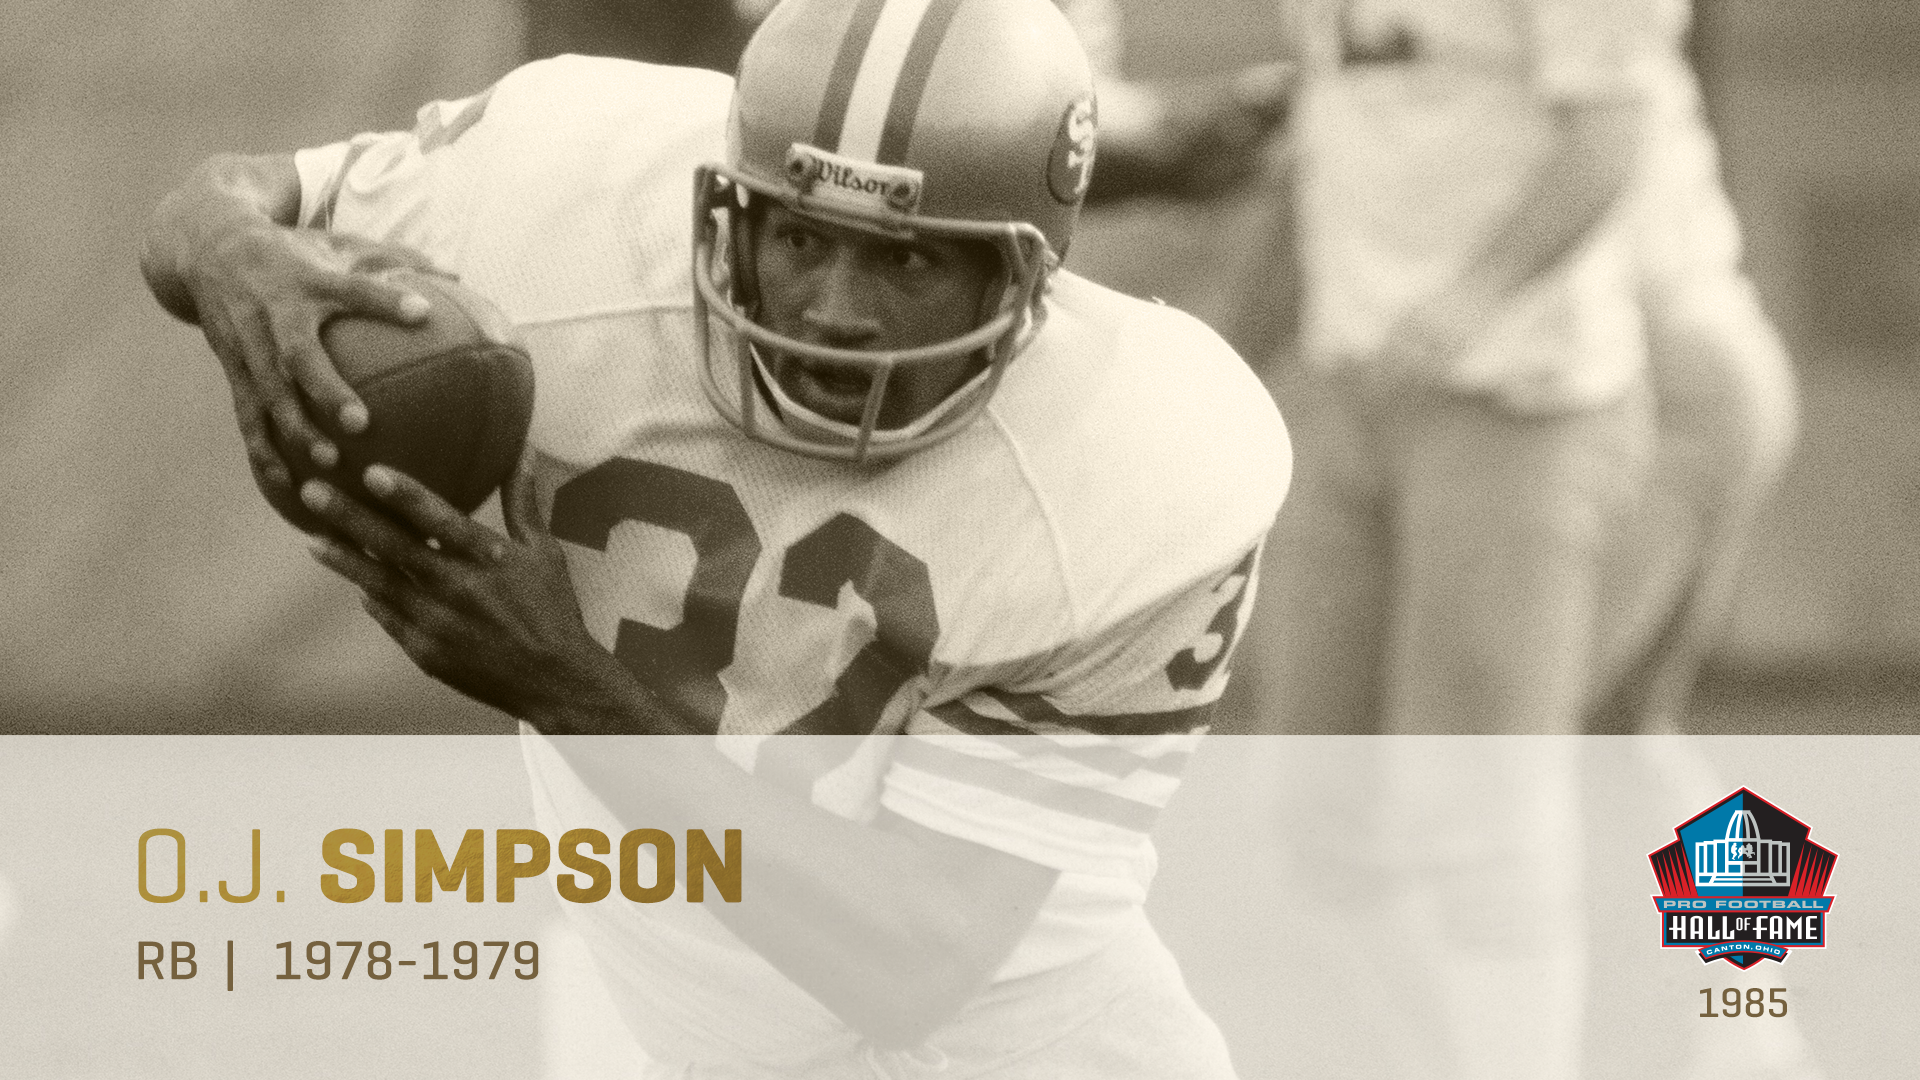 PLAYER-HOF-OJSimpson